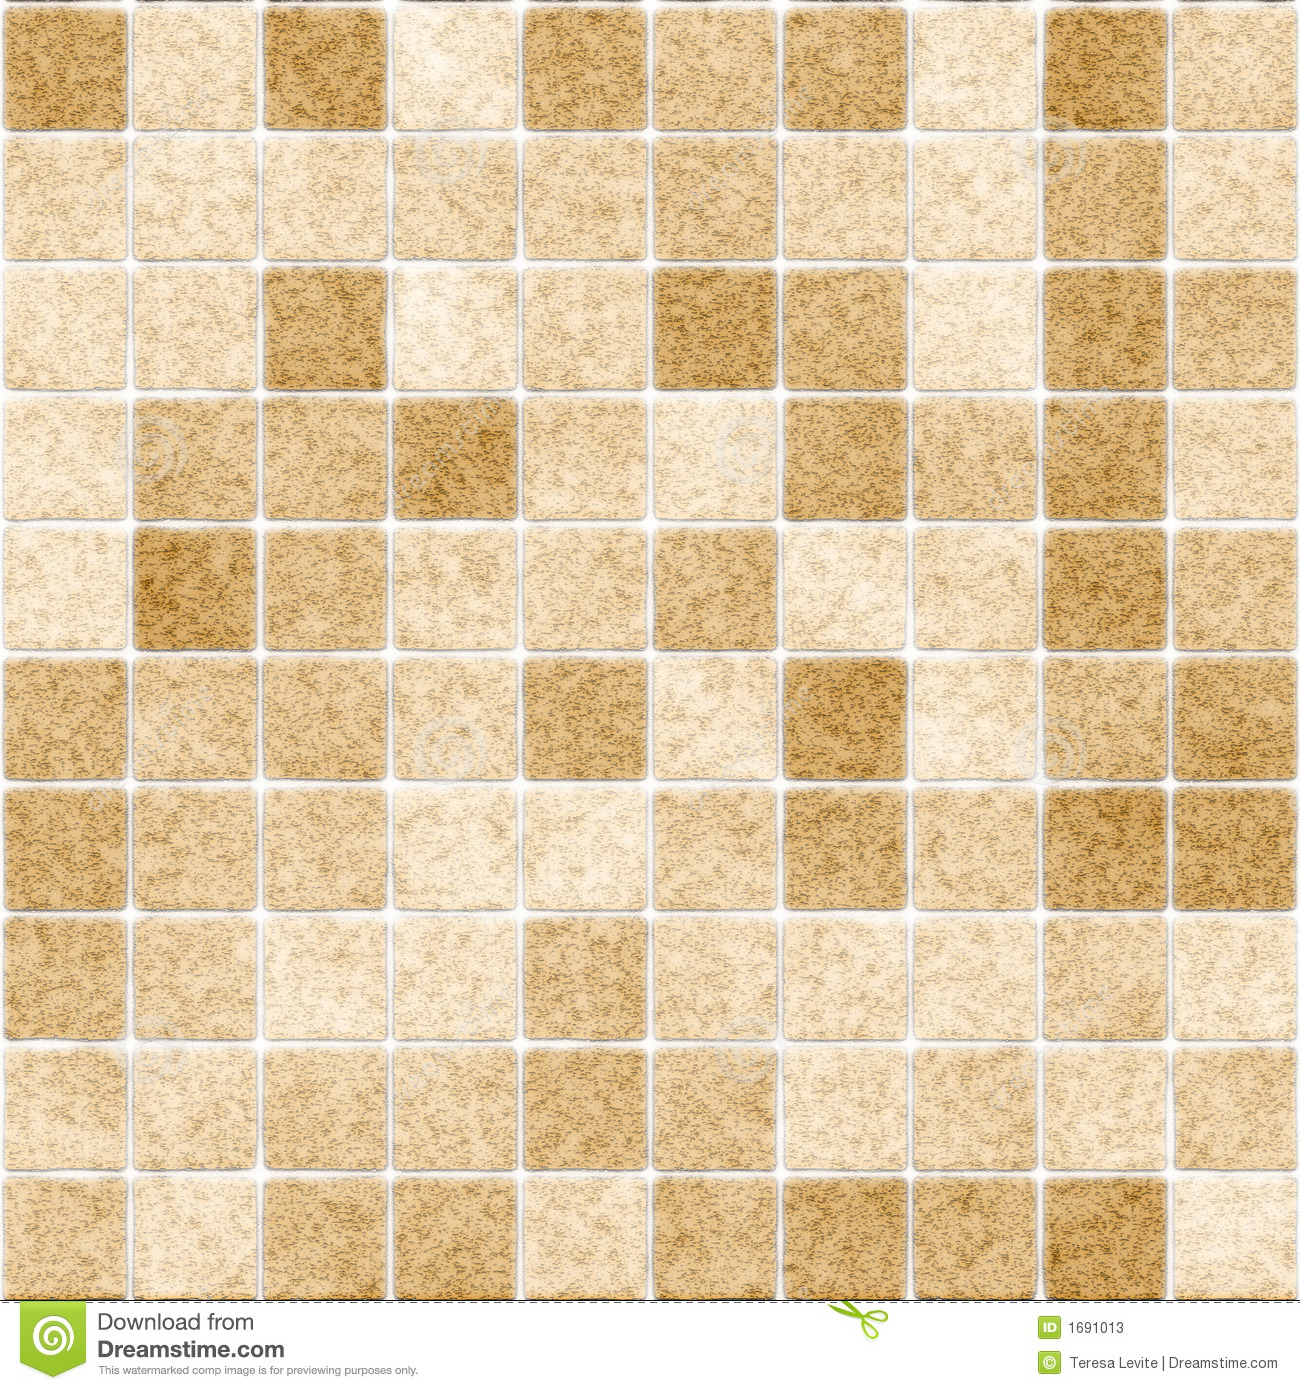 More similar stock images of ` Seamless Tile Background or Wallpaper `